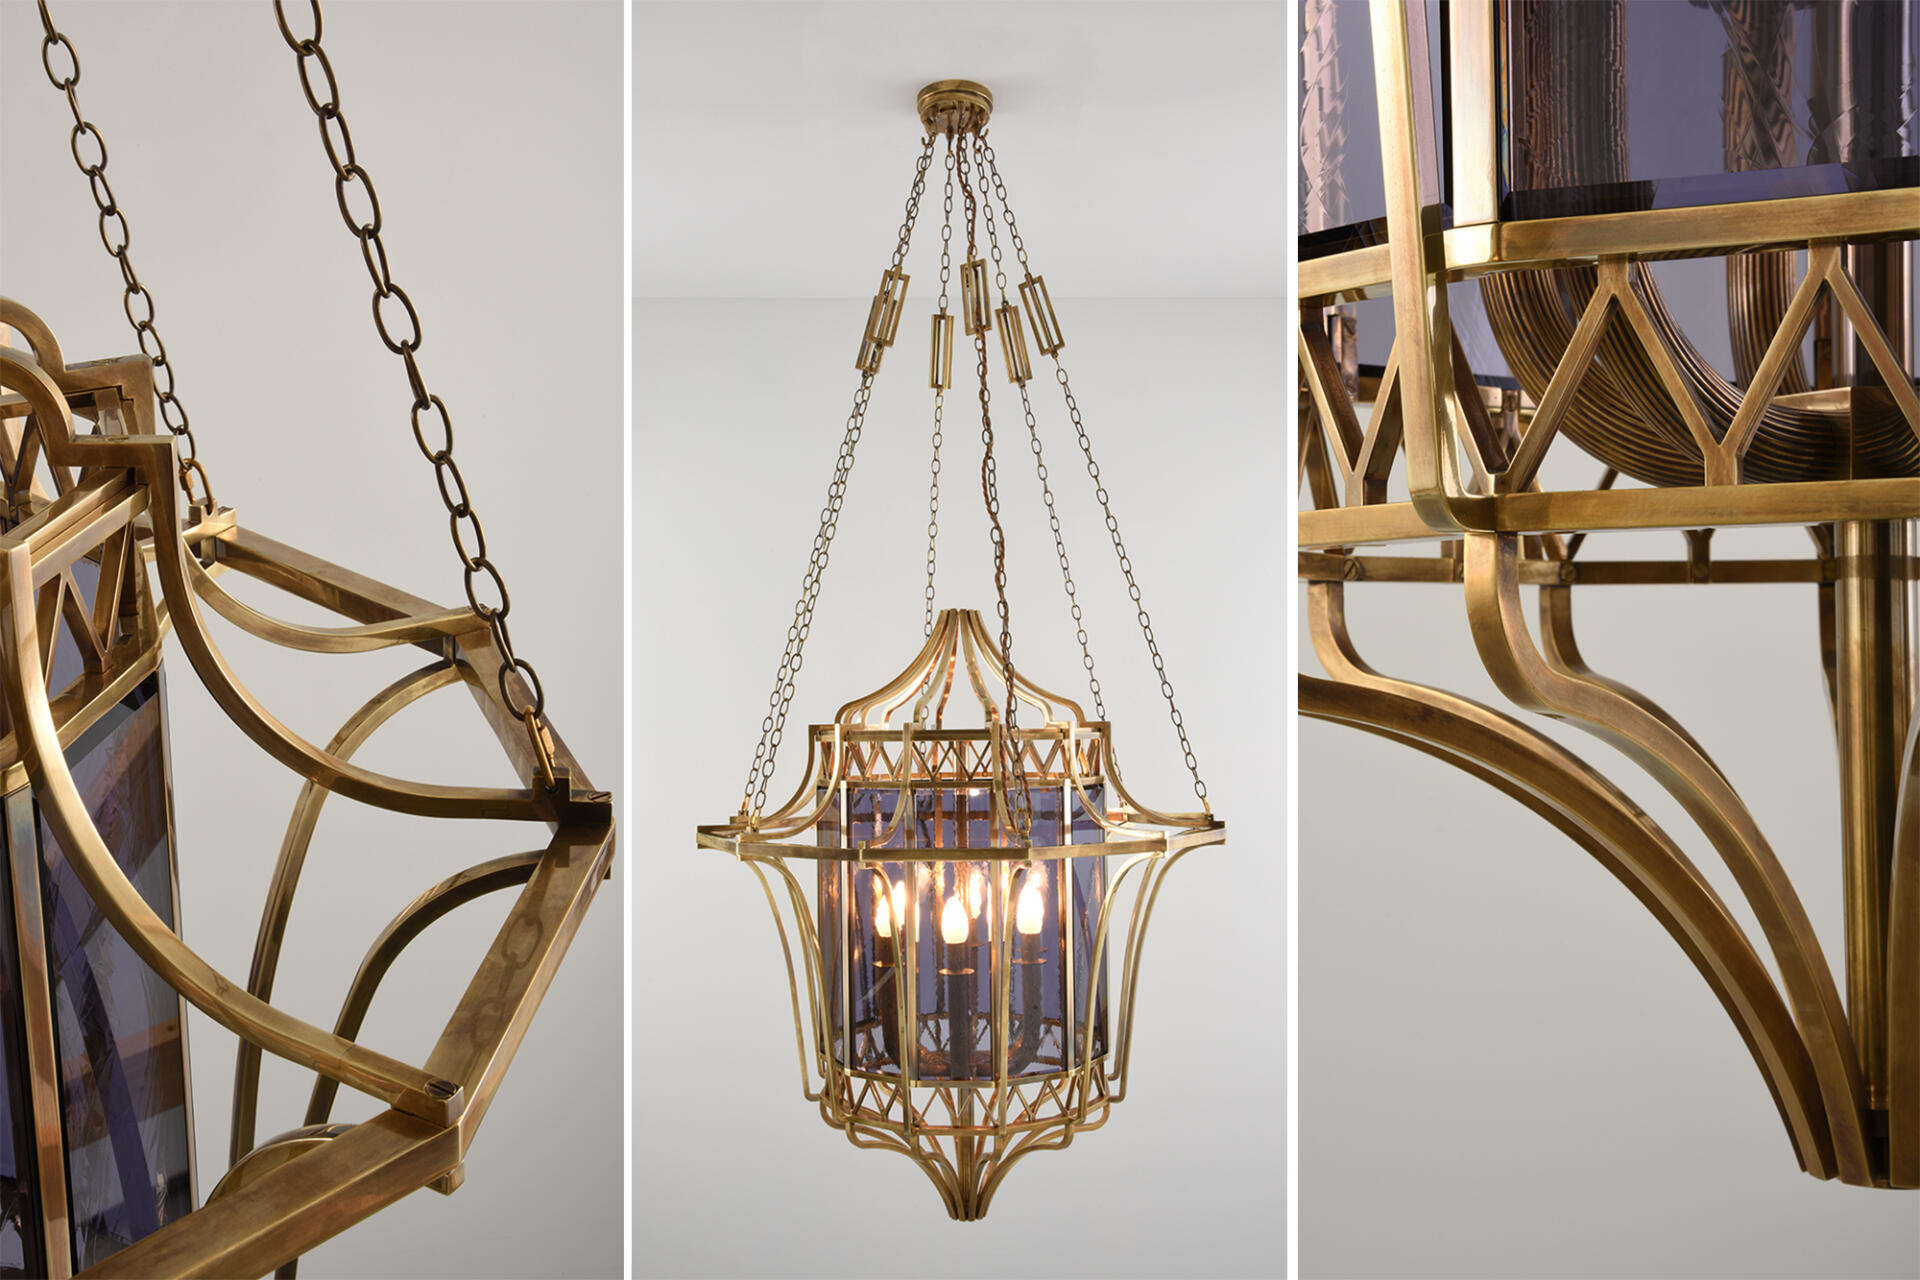 a bespoke lantern created at the Collier Webb foundry for Oro Bianco London